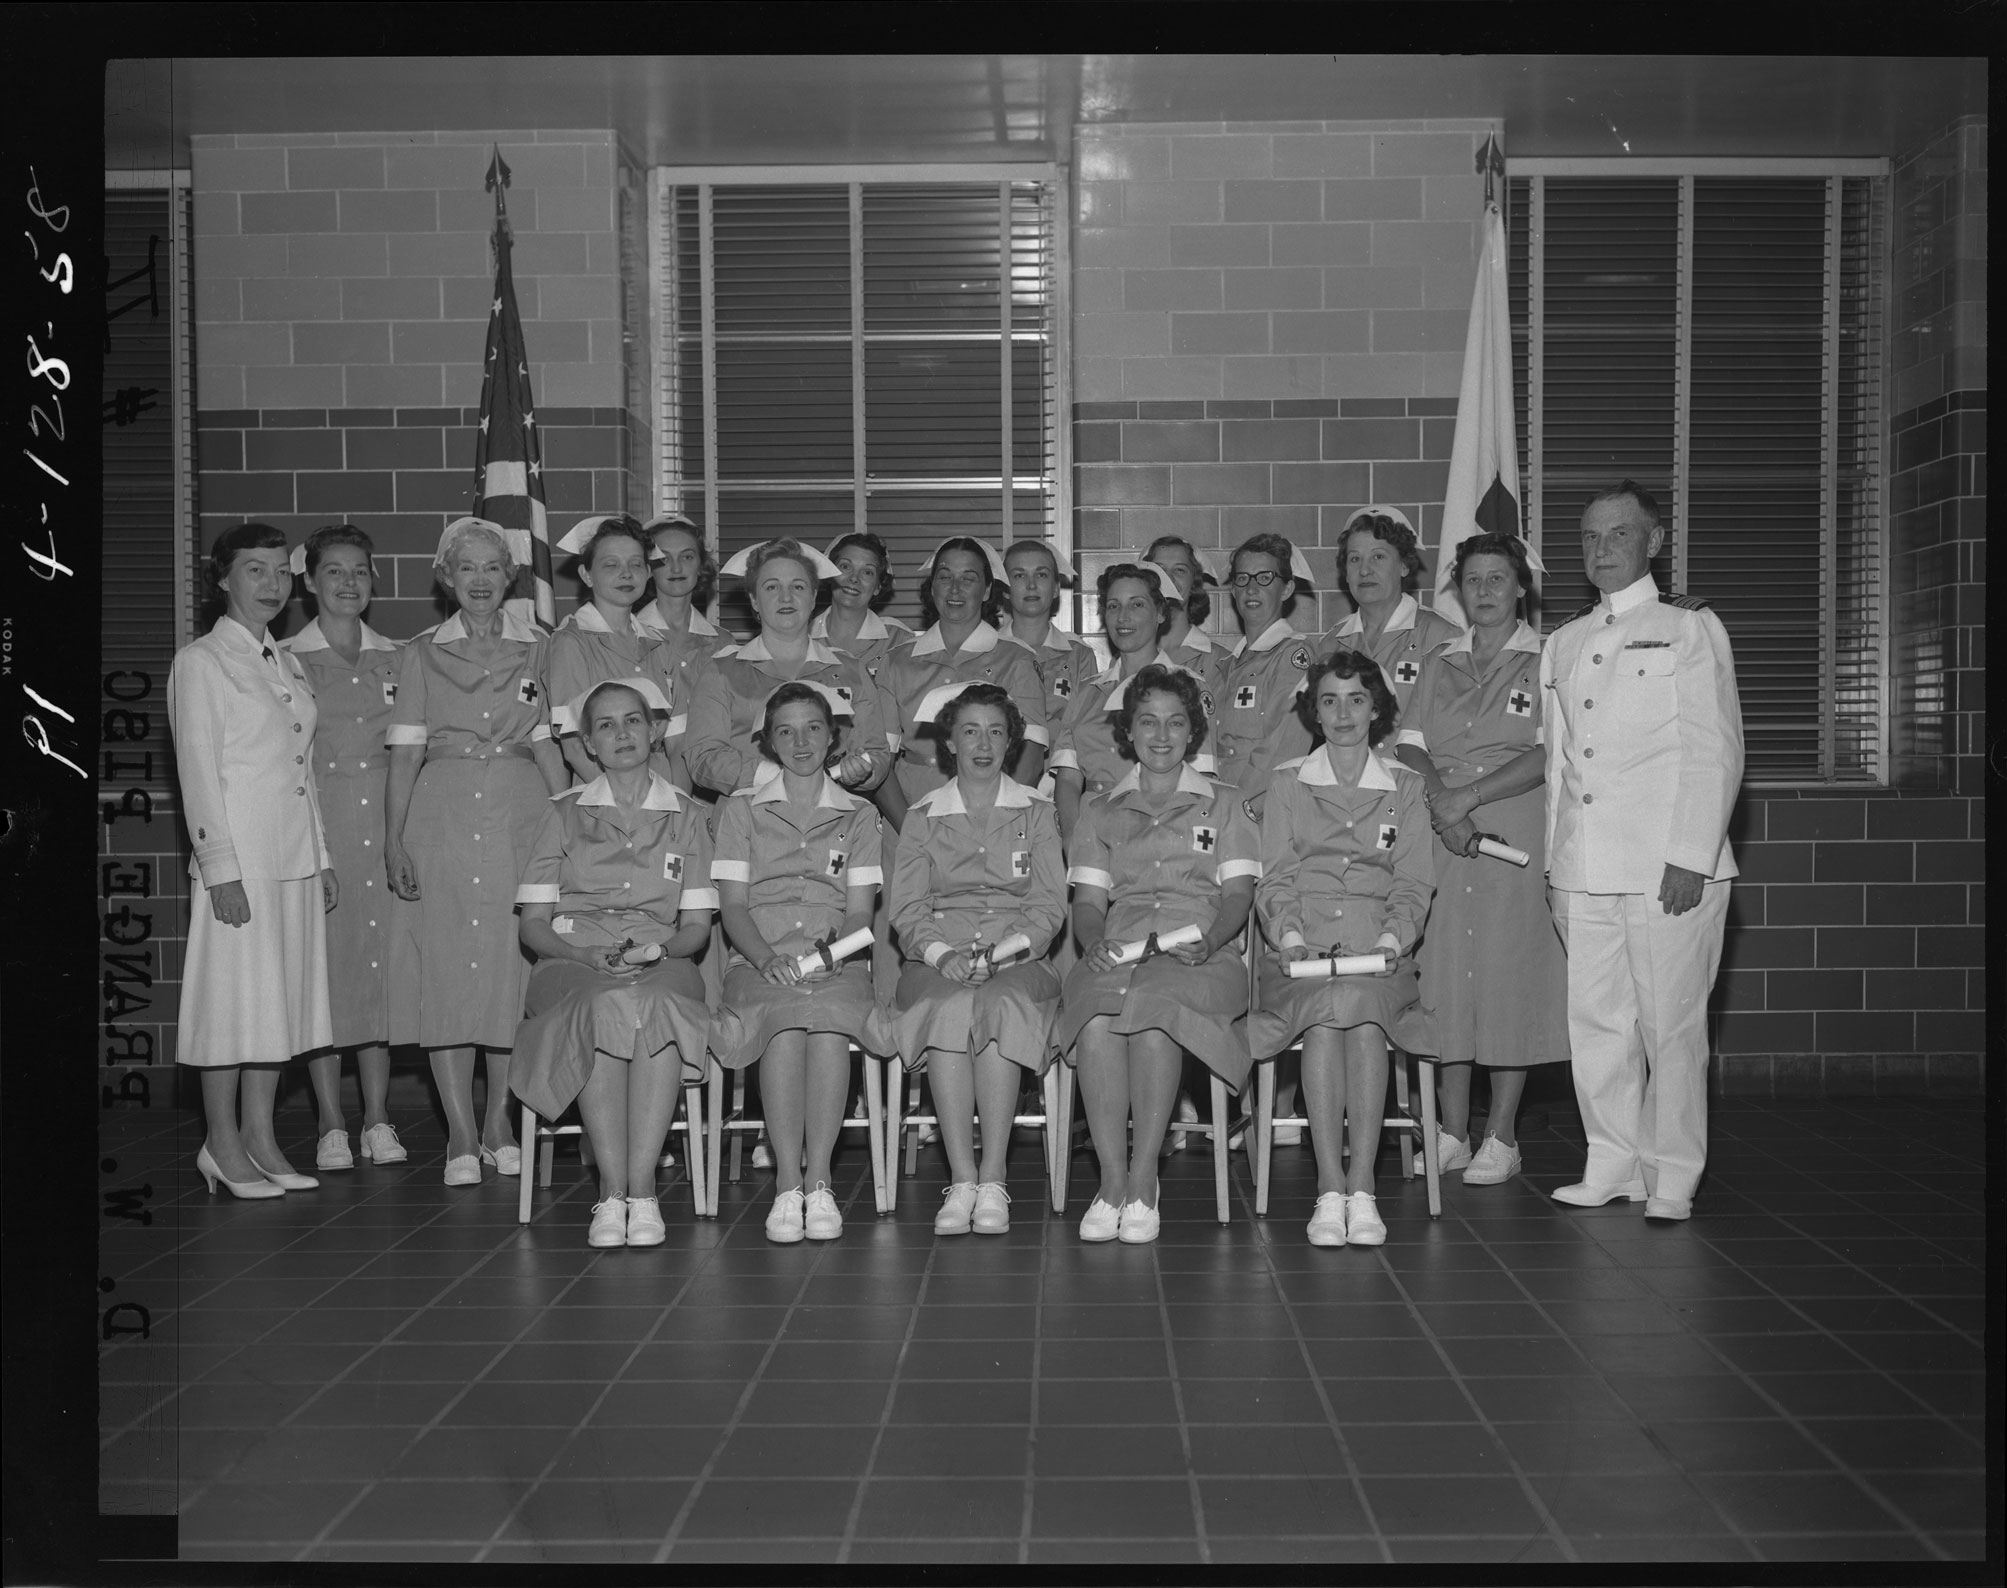 Capt. Reid and Nurses Aides (also known as Gray Ladies)